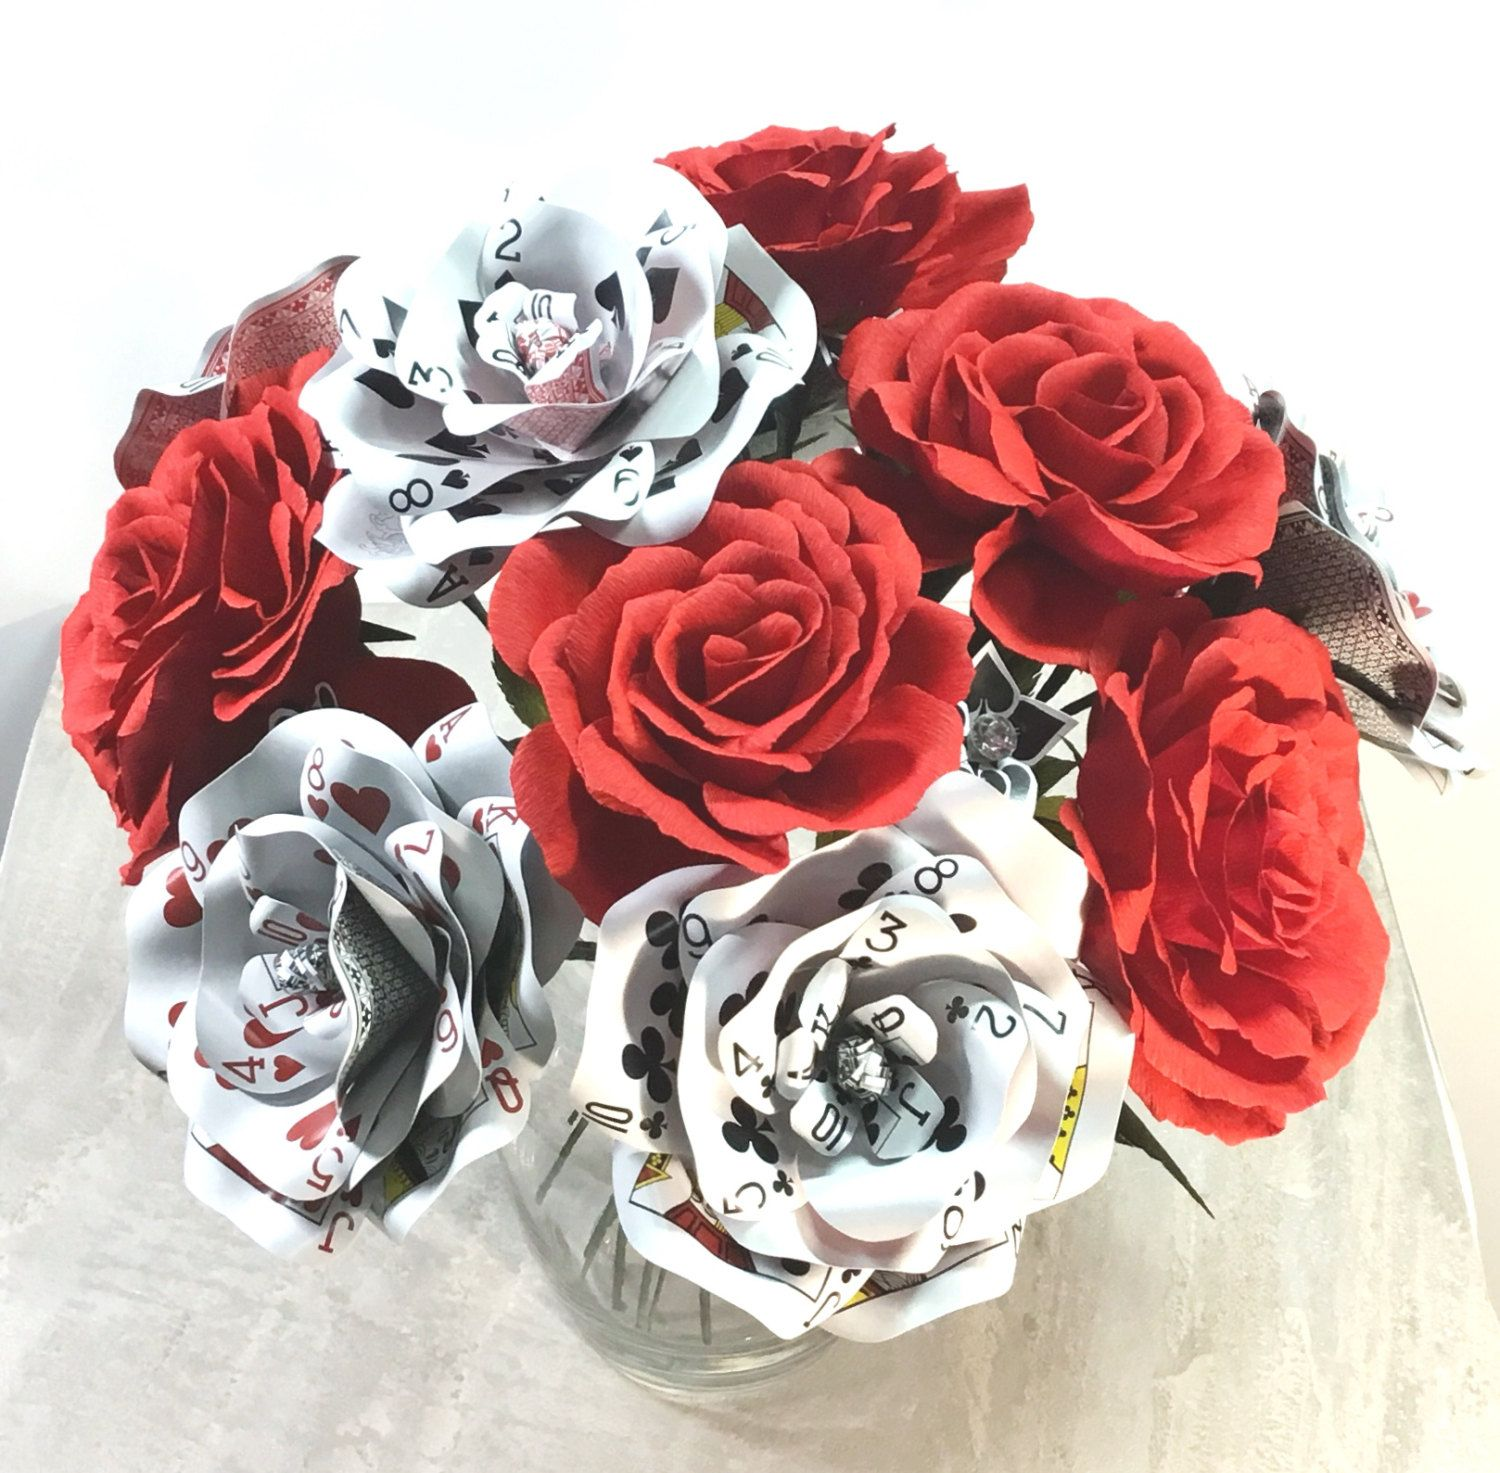 Playing card flower arrangement this listing is for 1 dozen paper playing card flower arrangement this listing is for 1 dozen paper flowers with 6 crepe paper roses 6 playing card flowers and 6 small suited flowers with mightylinksfo